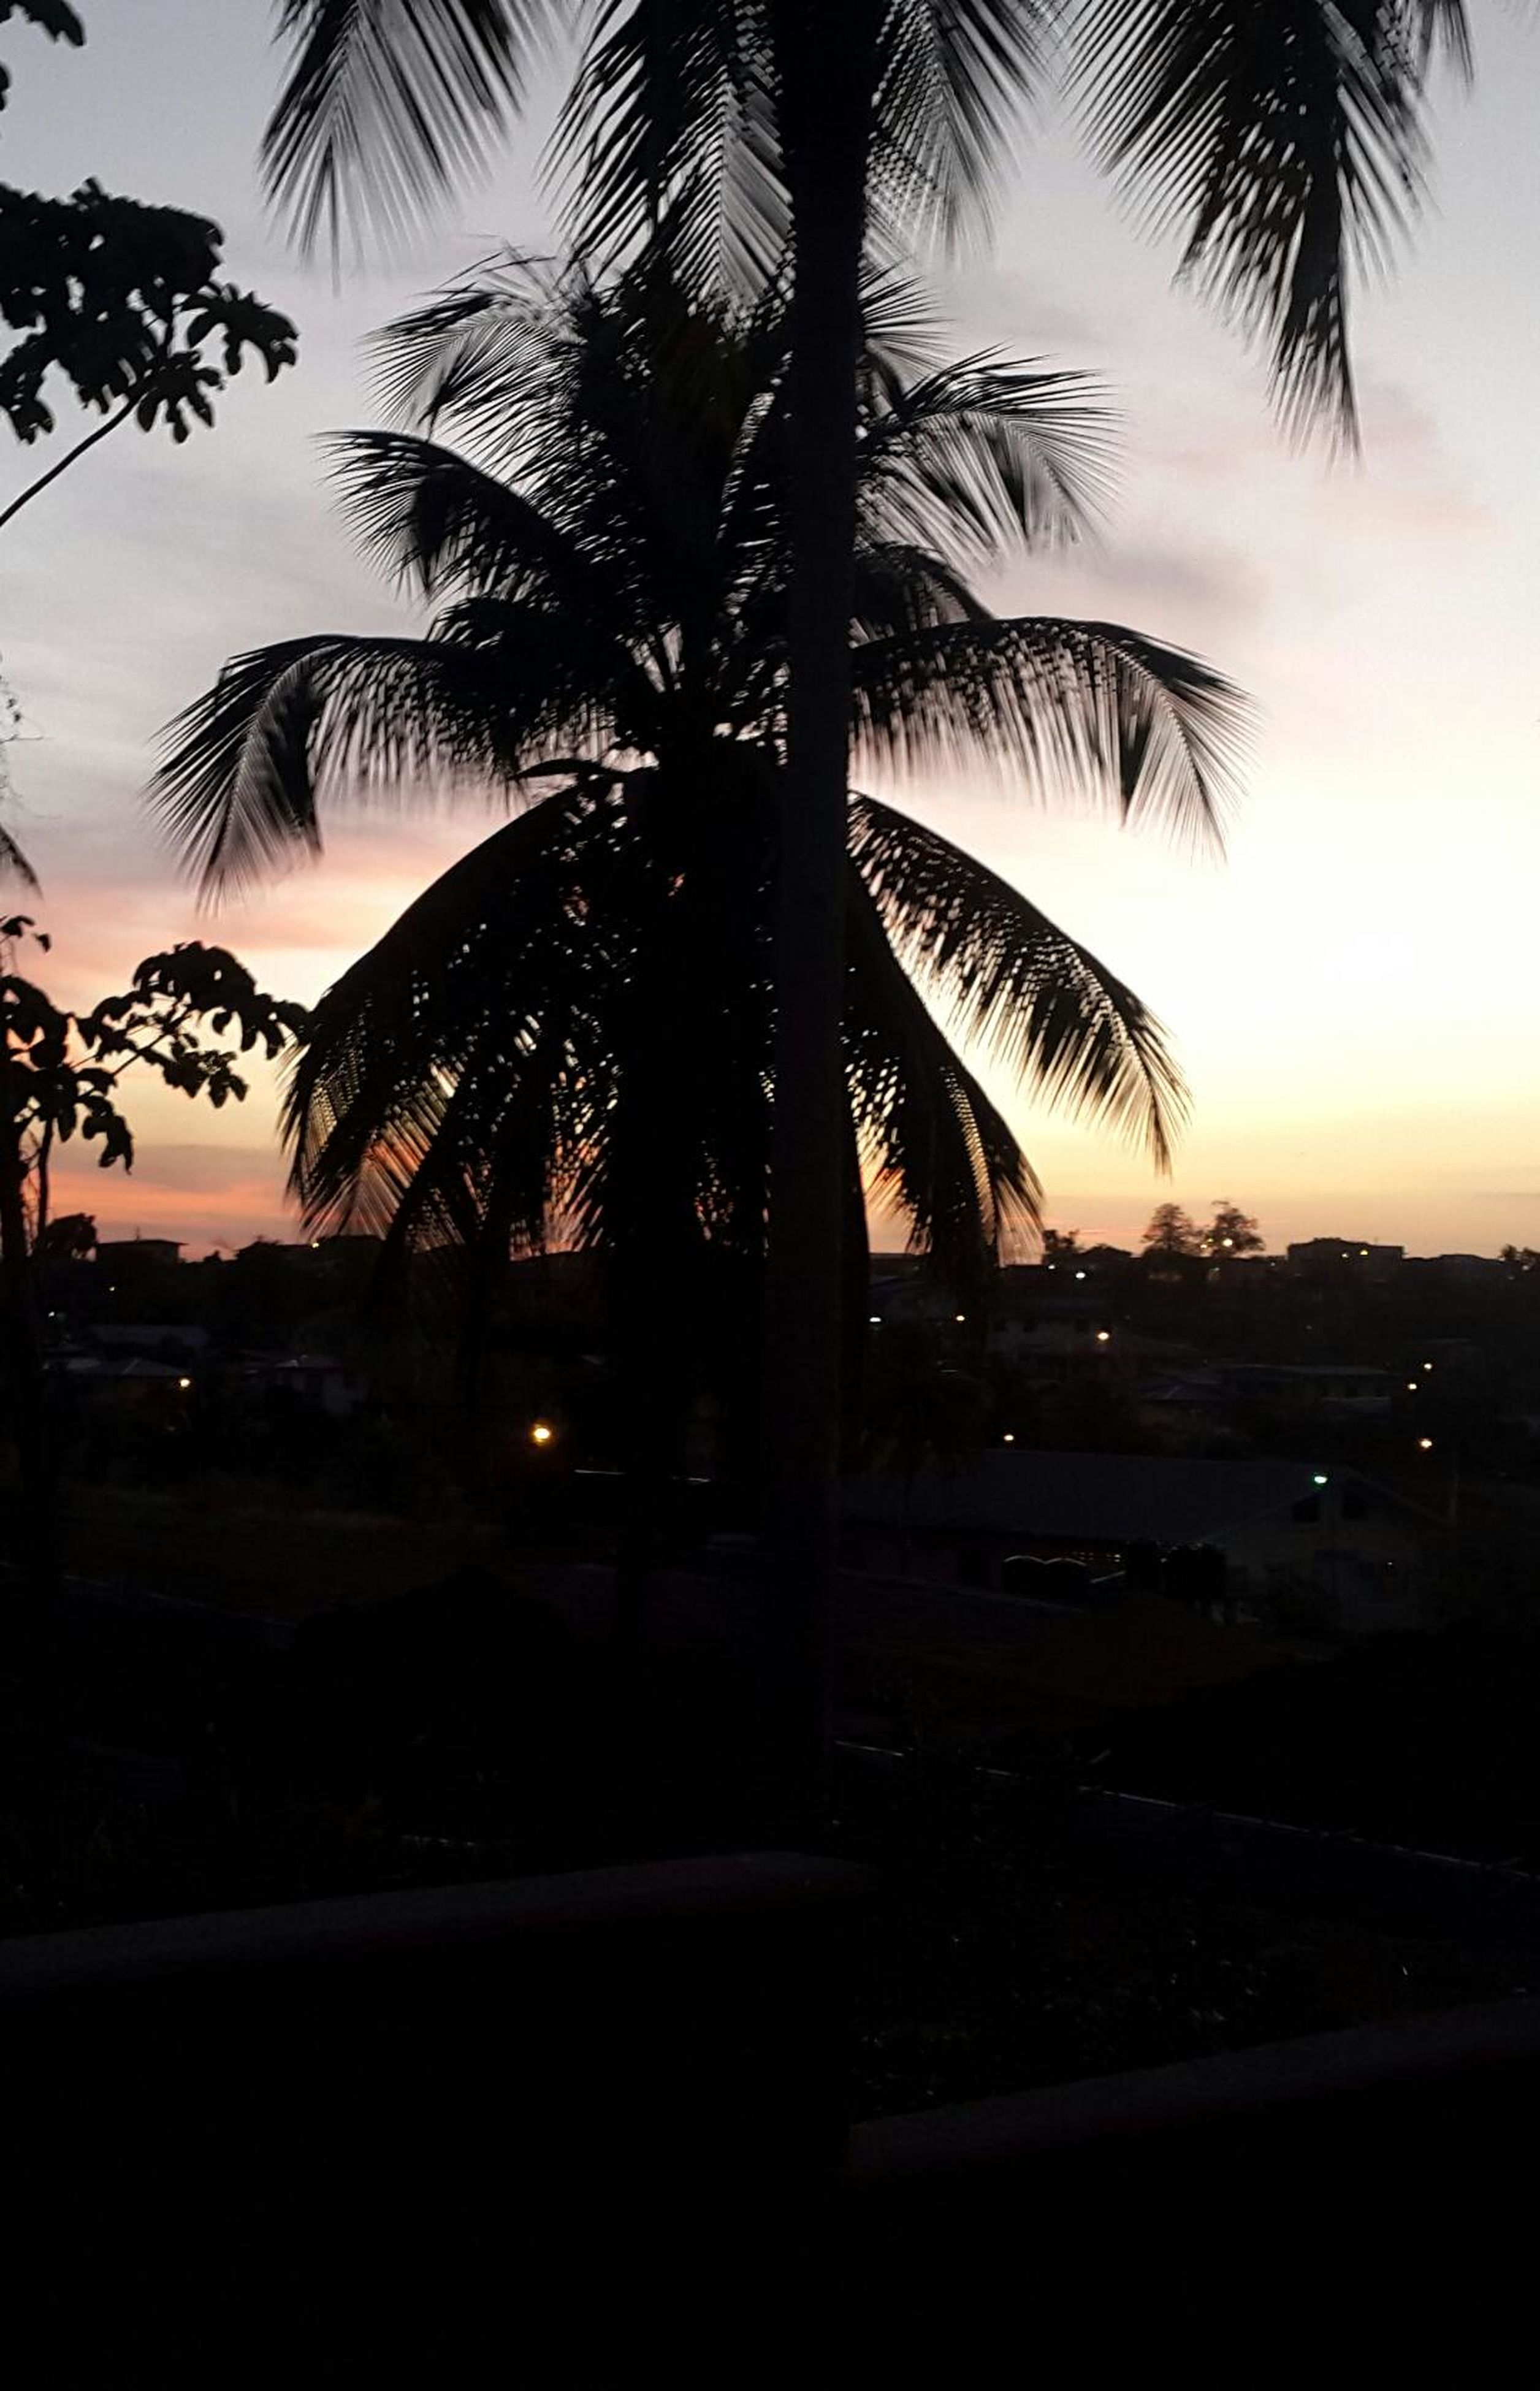 palm tree, silhouette, tree, sunset, sky, tranquility, scenics, nature, tranquil scene, sea, beauty in nature, built structure, growth, dusk, building exterior, outdoors, beach, architecture, water, no people